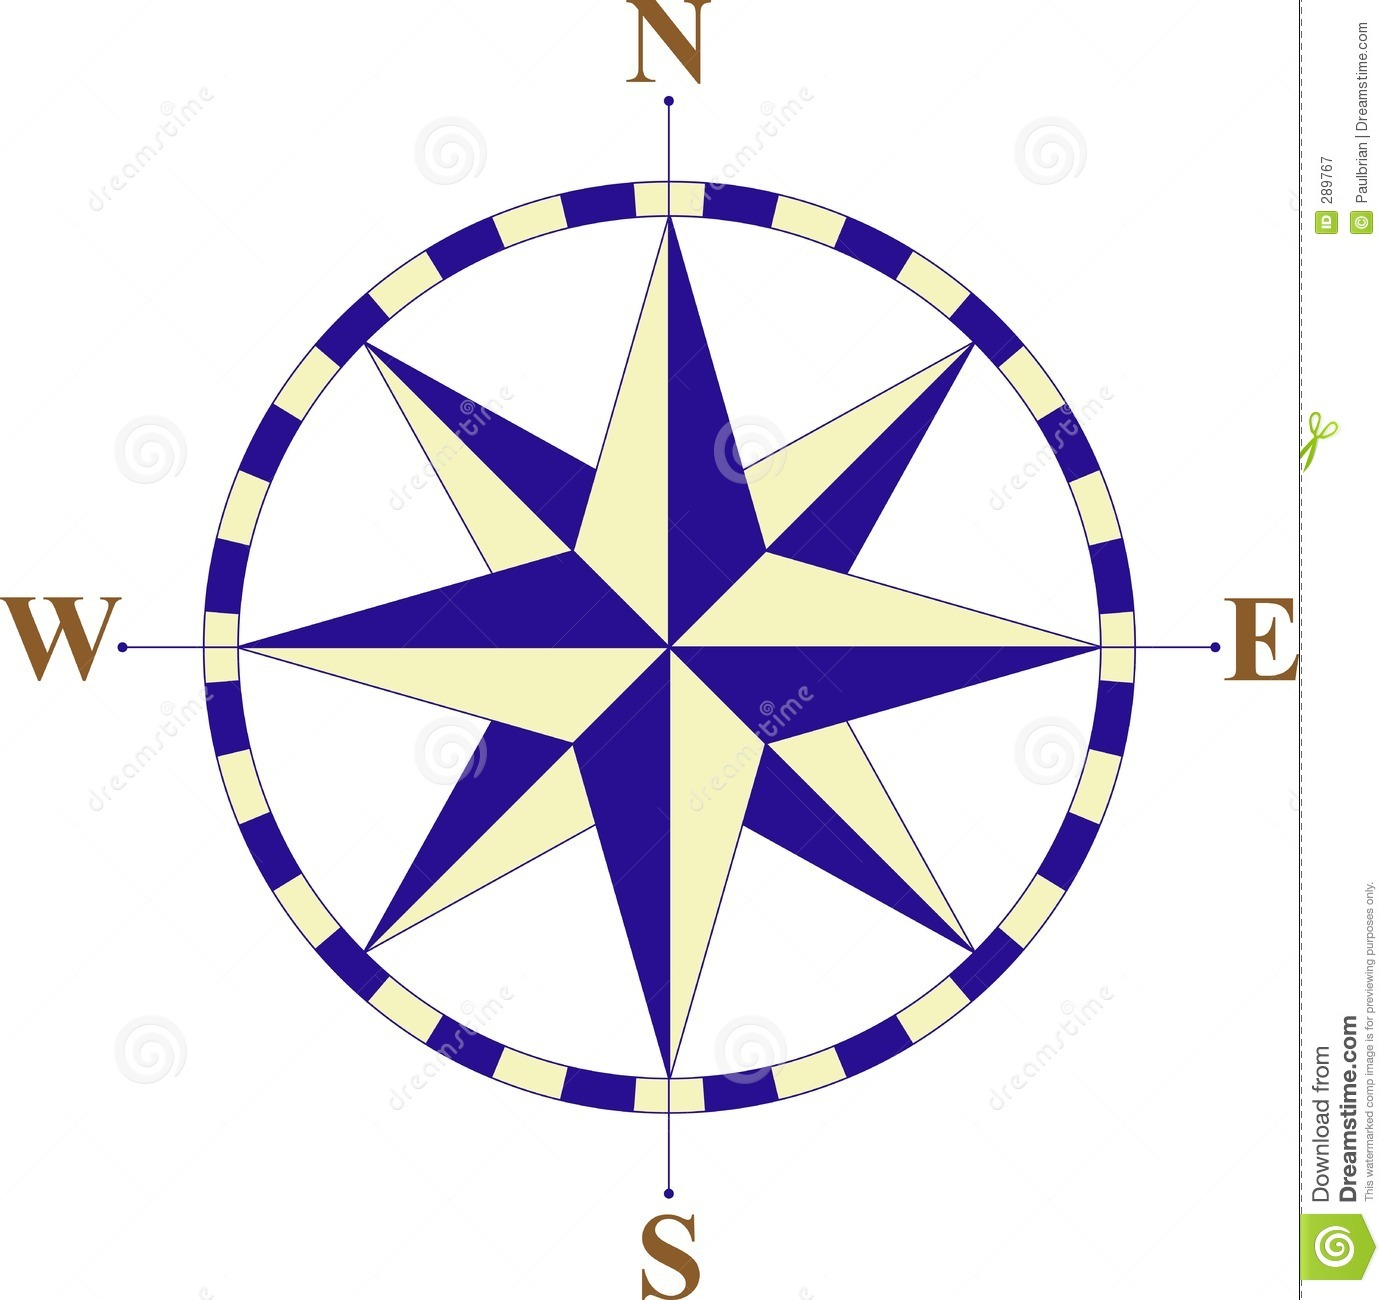 Compass Royalty Free Stock Photography - Image: 289767